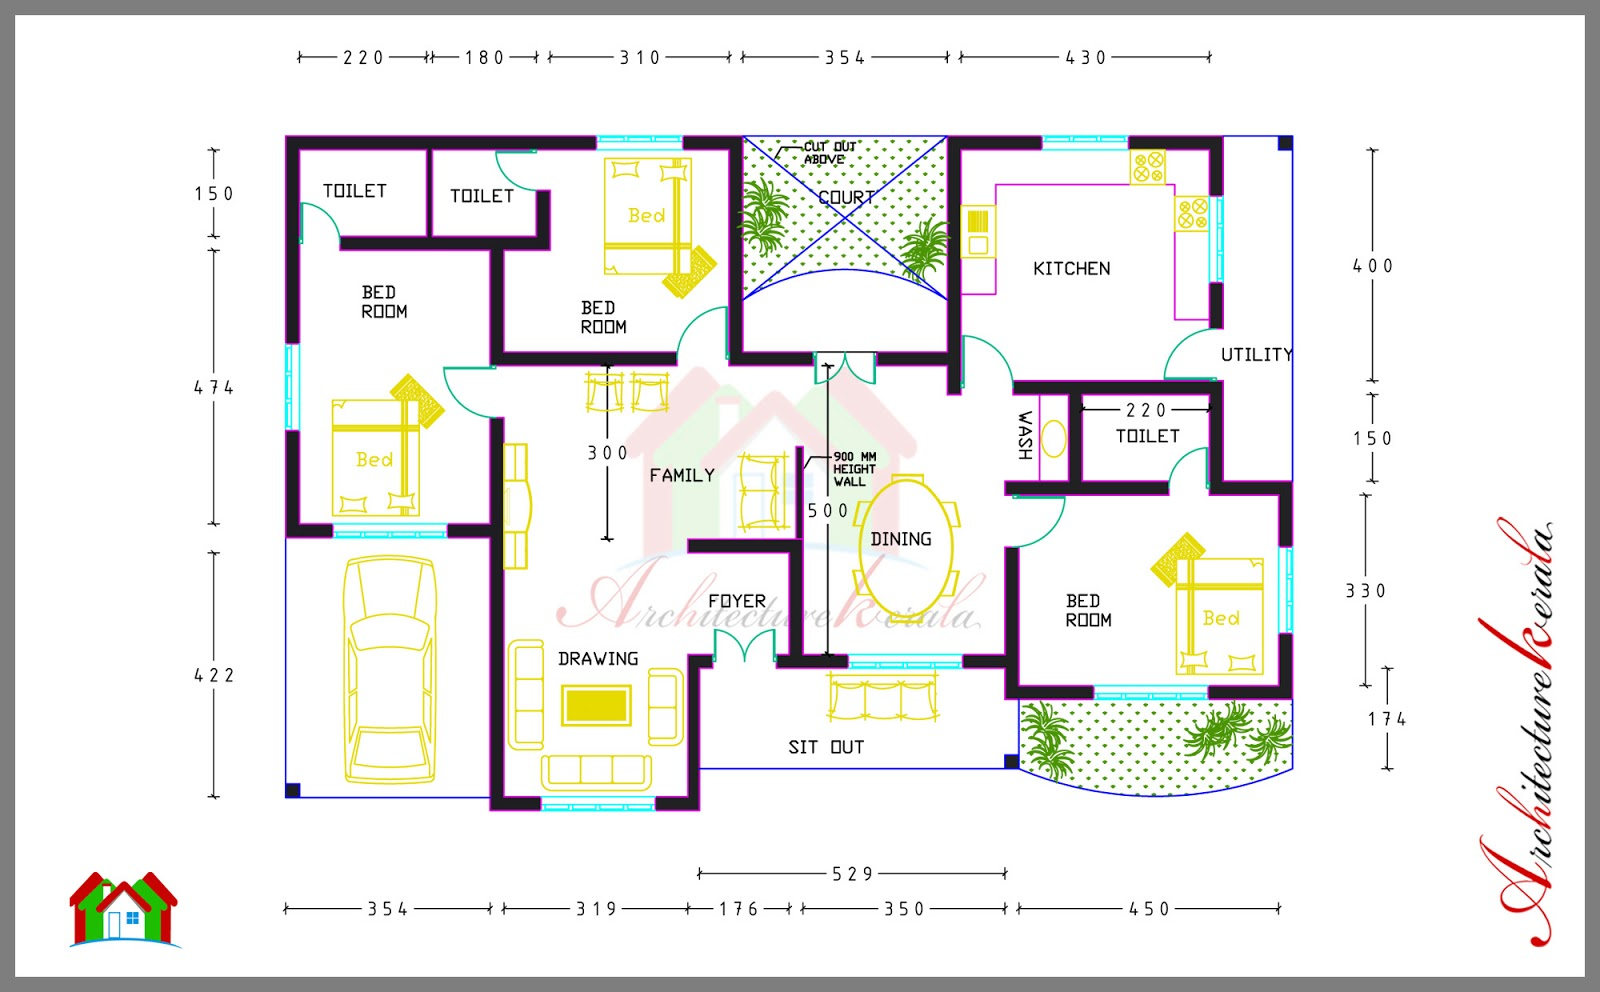 3 bed room house plan with room dimensions architecture 3 bedroom kerala house plans